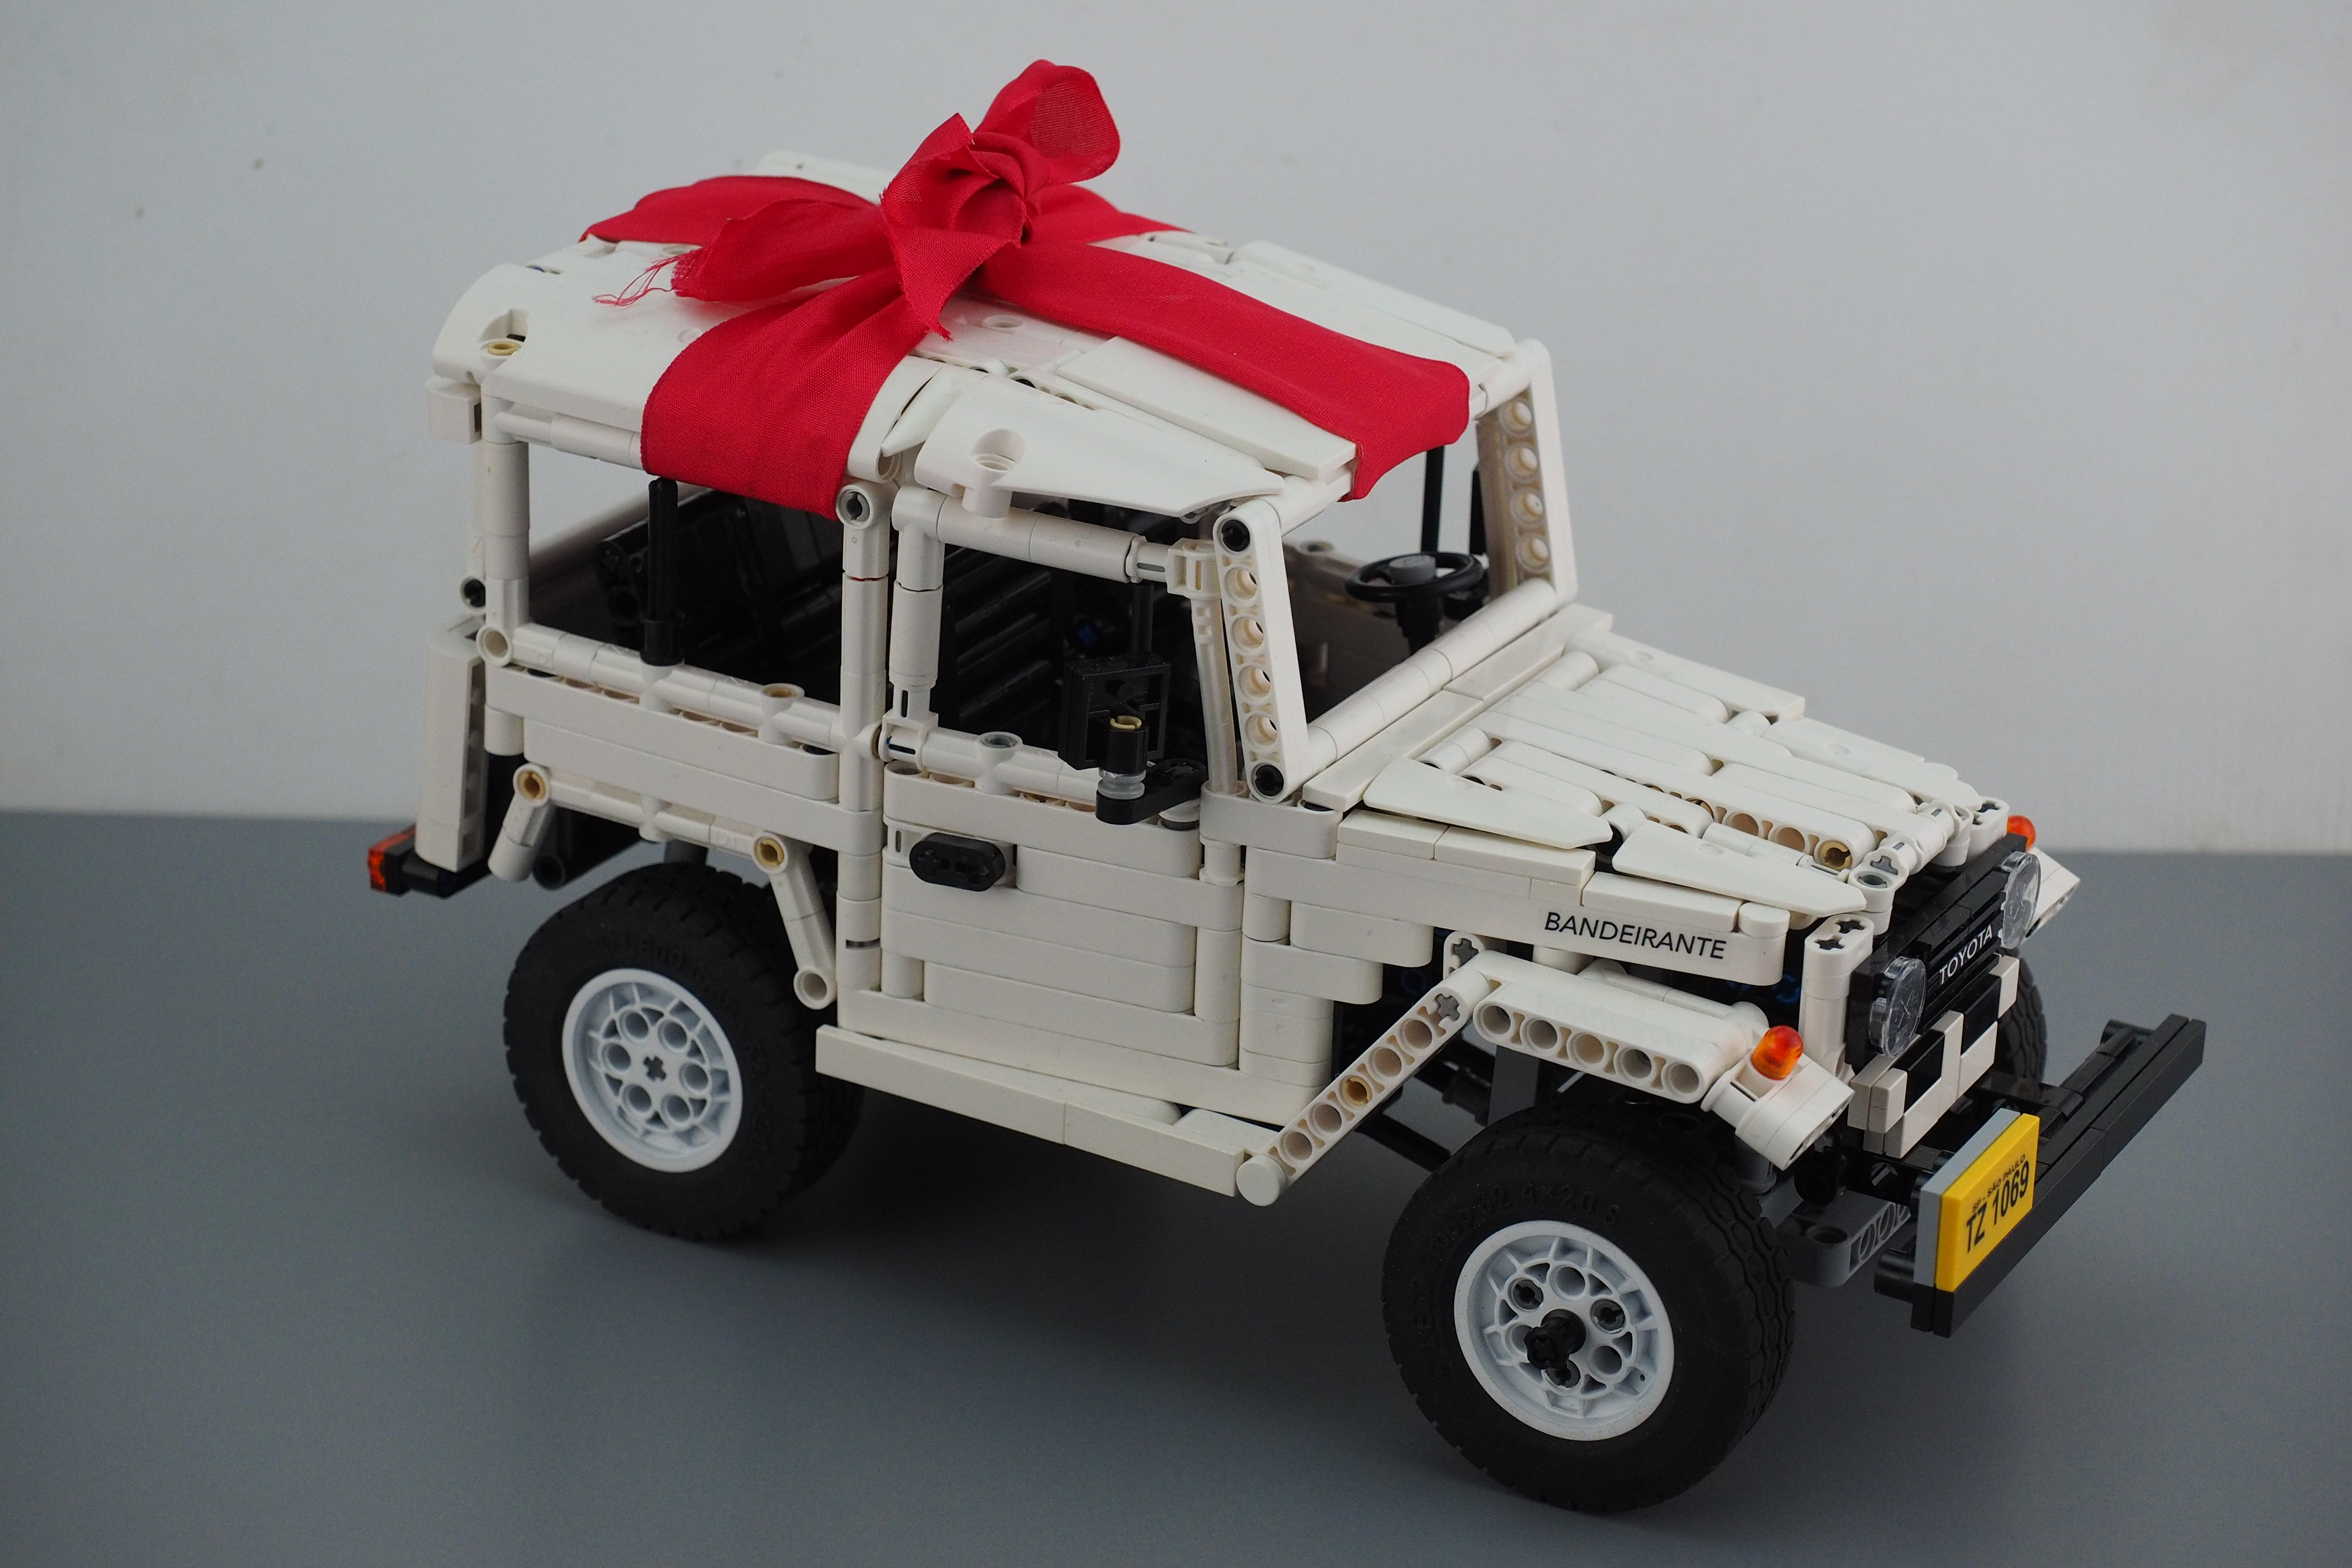 Toyota Bandeirante made from LEGO bricks « Intuition